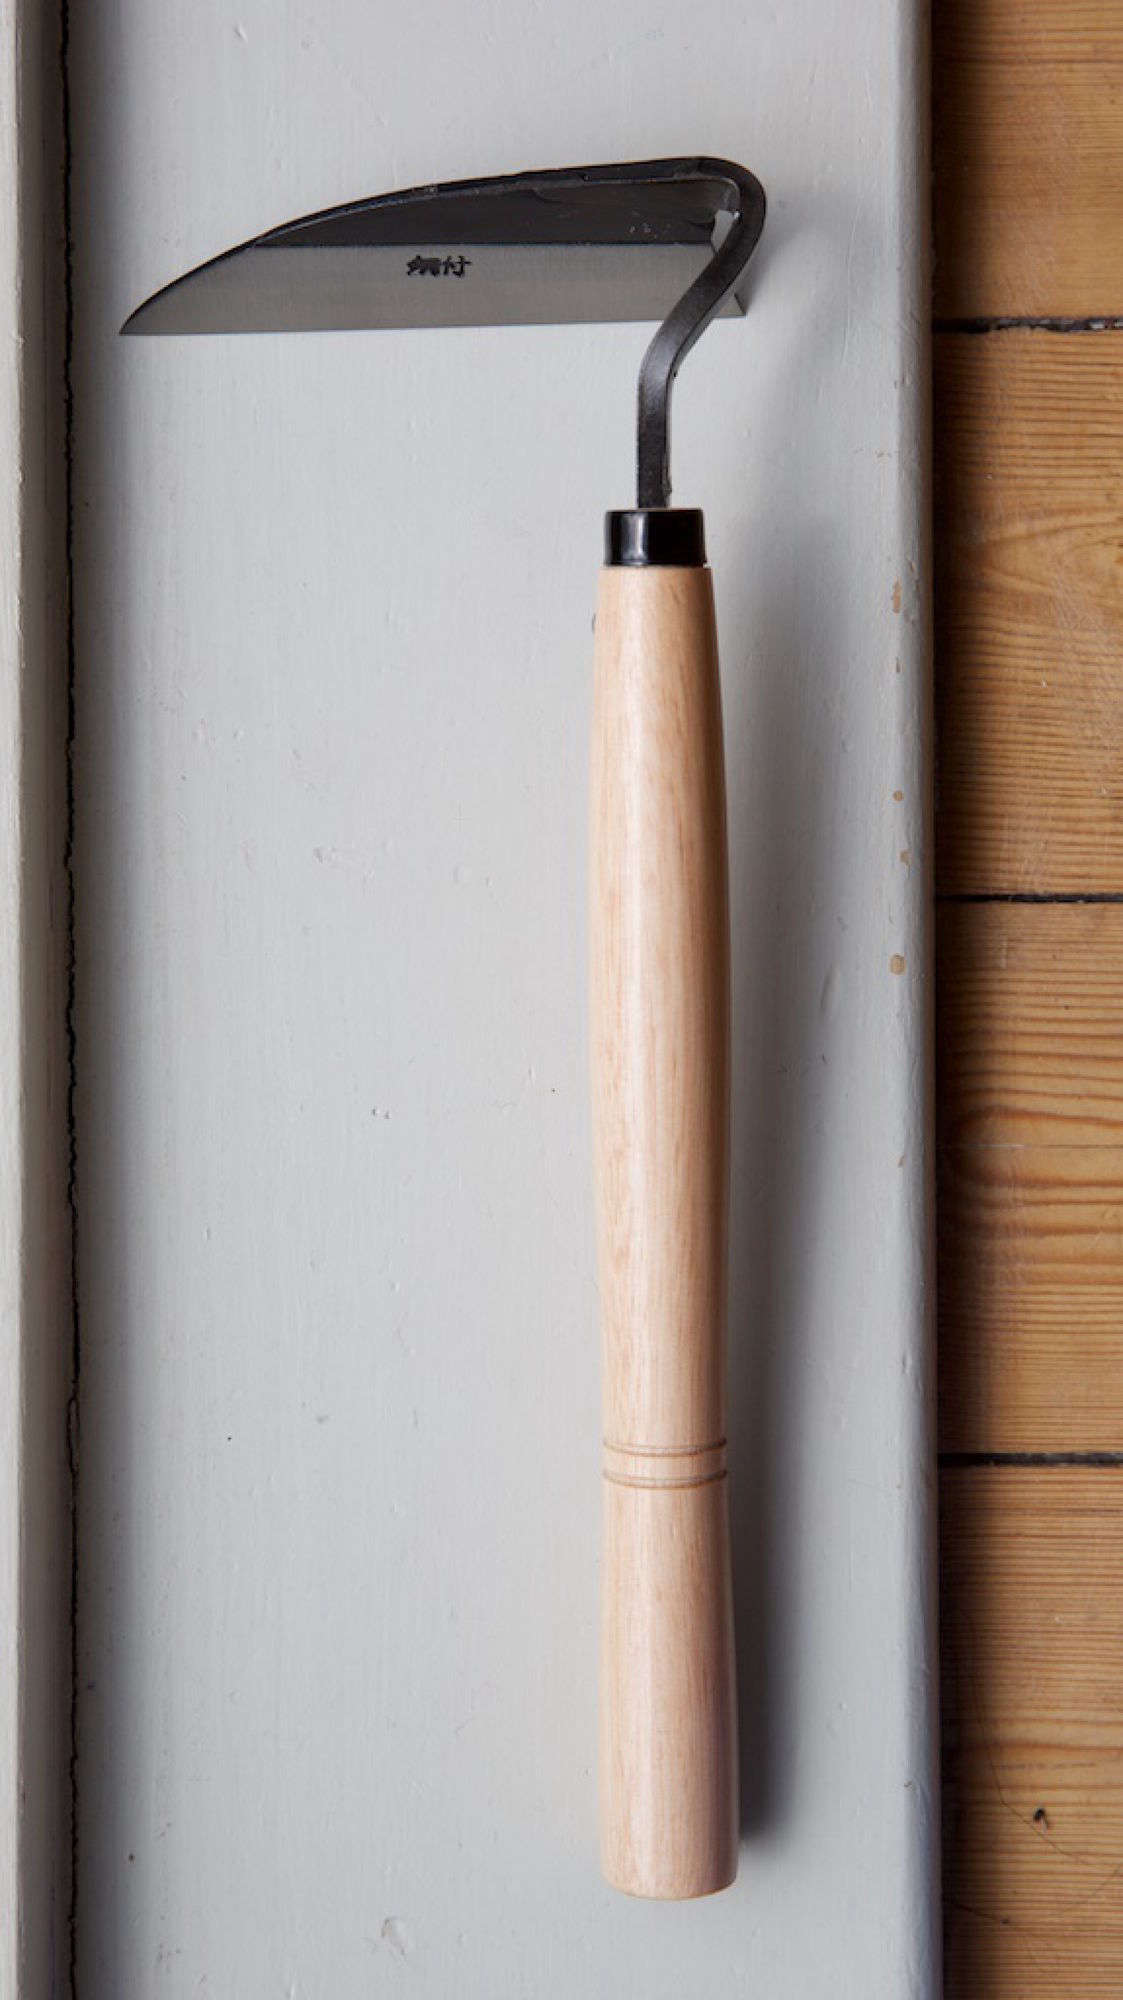 From Japan, A 13 Inch Long Weeding Hoe Has A Pine Handle And